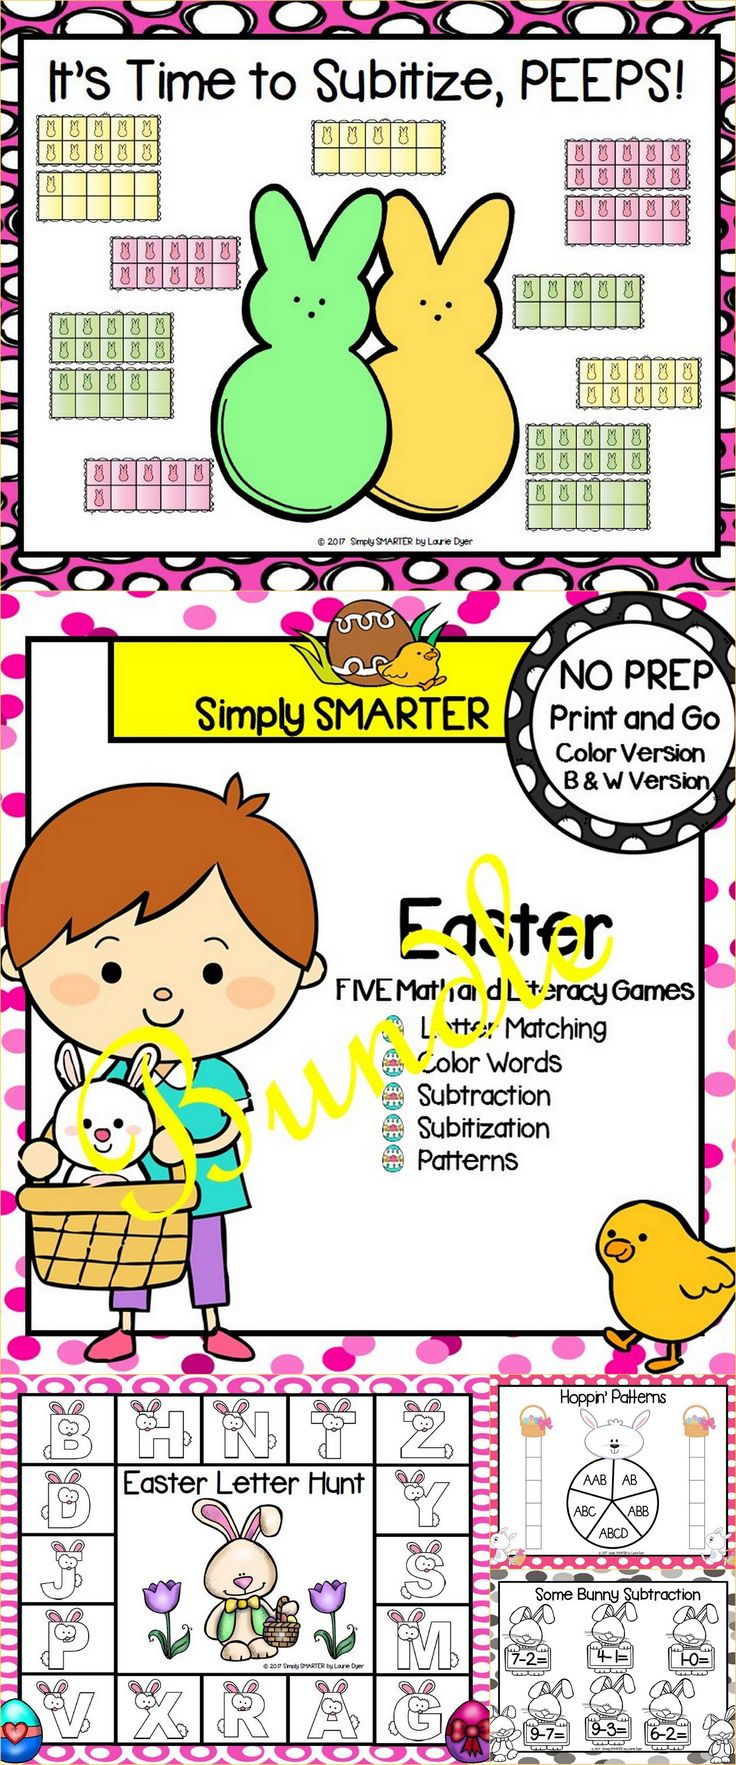 Are you looking for NO PREP literacy and math games for preschool, kindergarten, or first grade? Then download this bundle and go! Enjoy this phonics and math resource which is comprised of FIVE different EASTER themed games complete with a color version and black and white version of each game. The games can be used for small group work, partner collaboration, or homework!